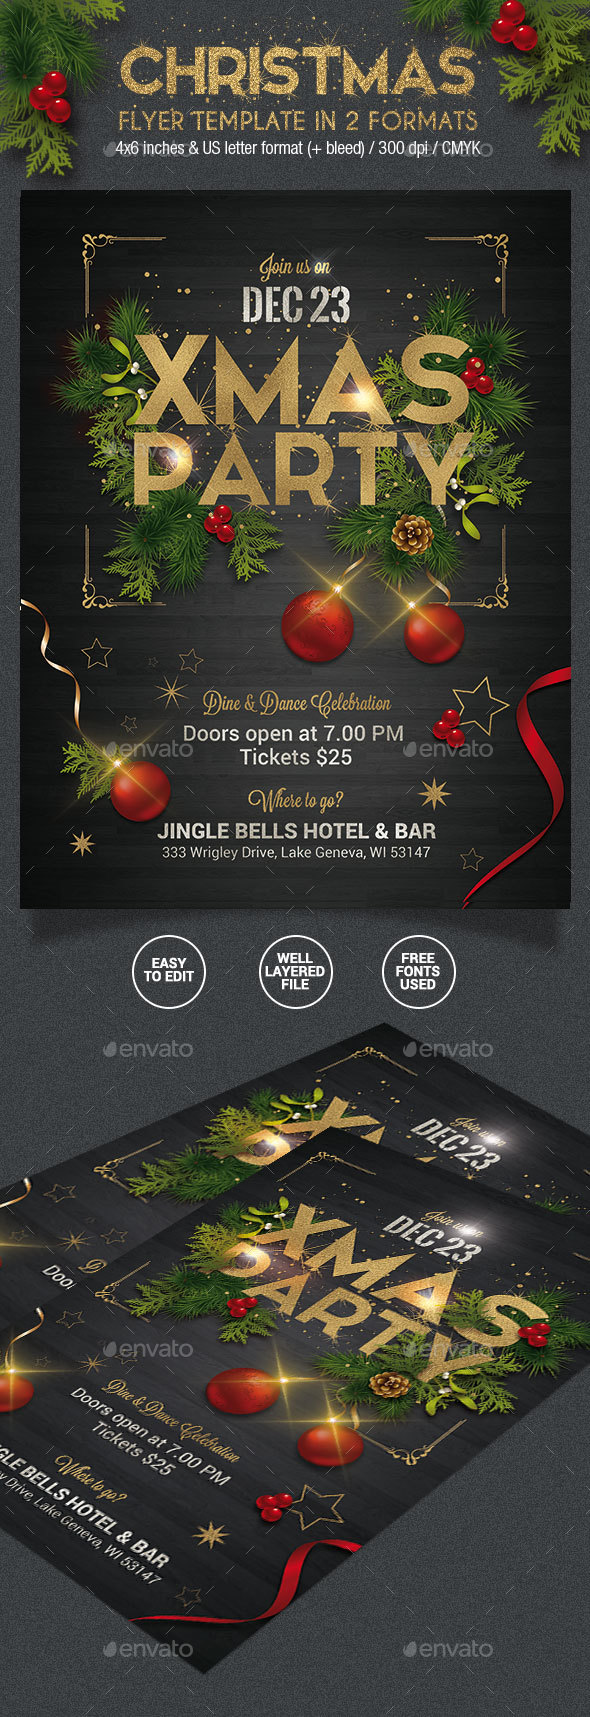 Christmas Party Flyer - 2 Formats - Holidays Events